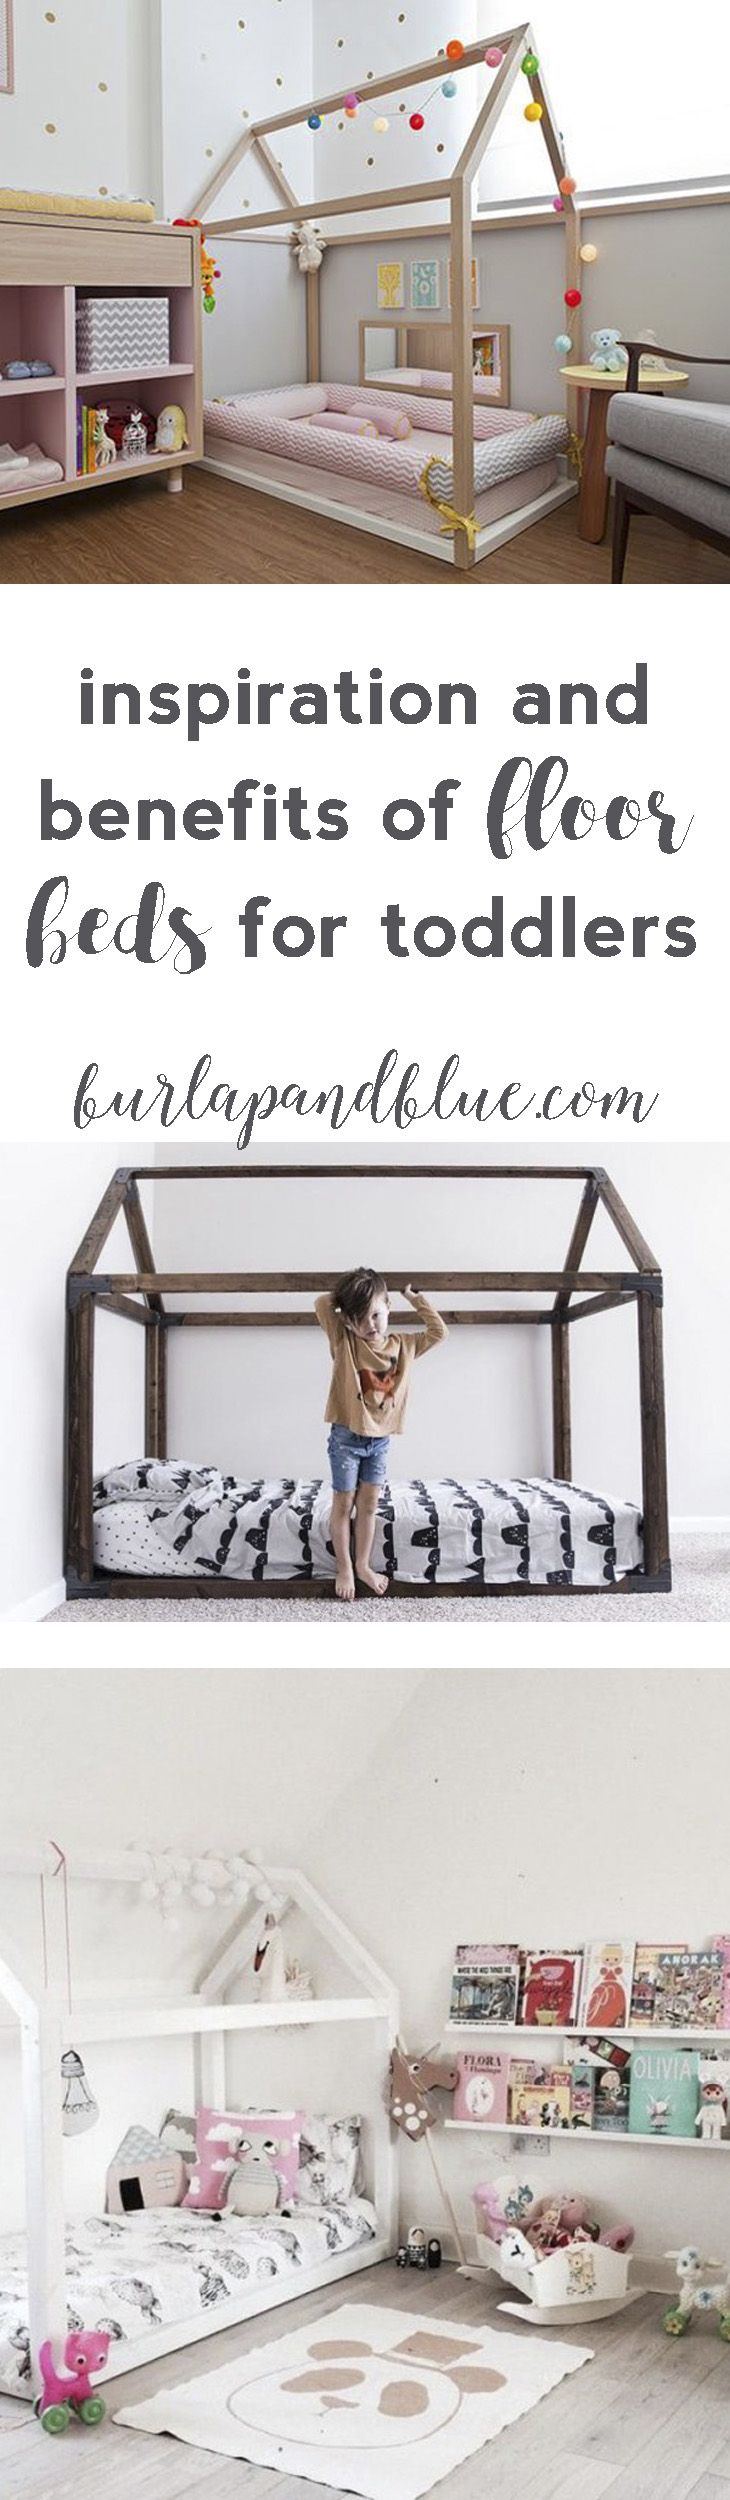 Floor Bed For Toddlers {5 Benefits Of A Floor Bed}